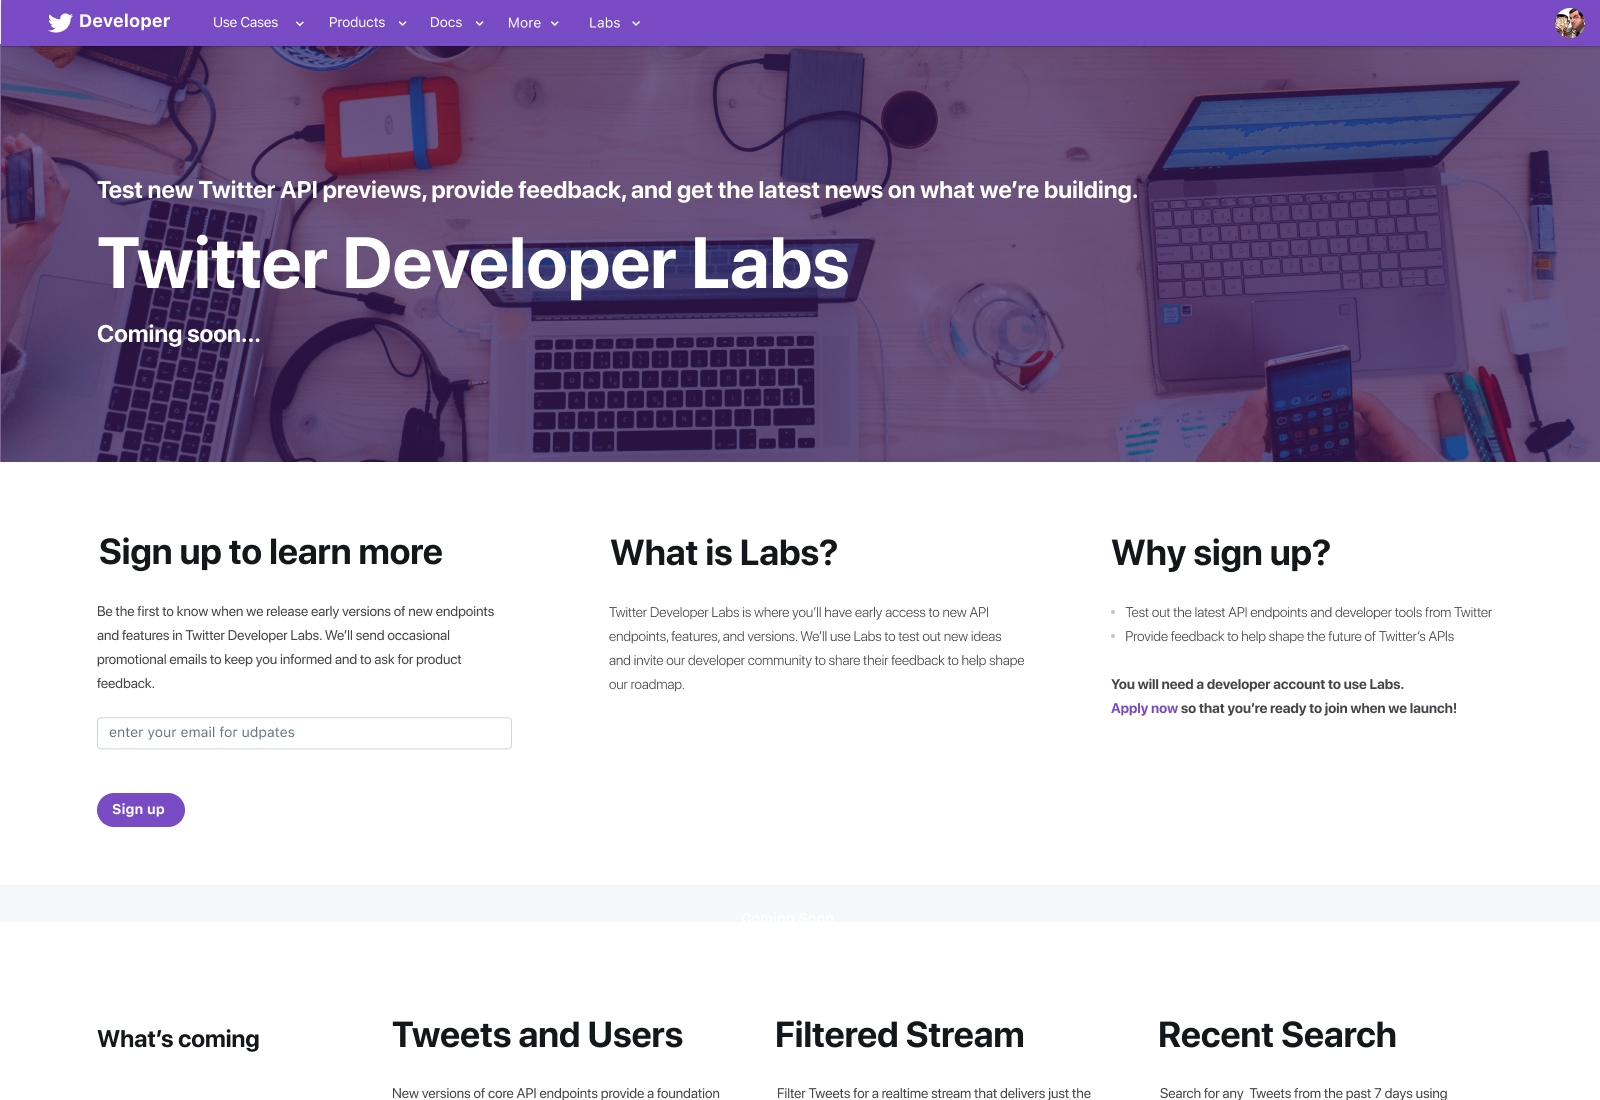 Twitter Developer Labs main page